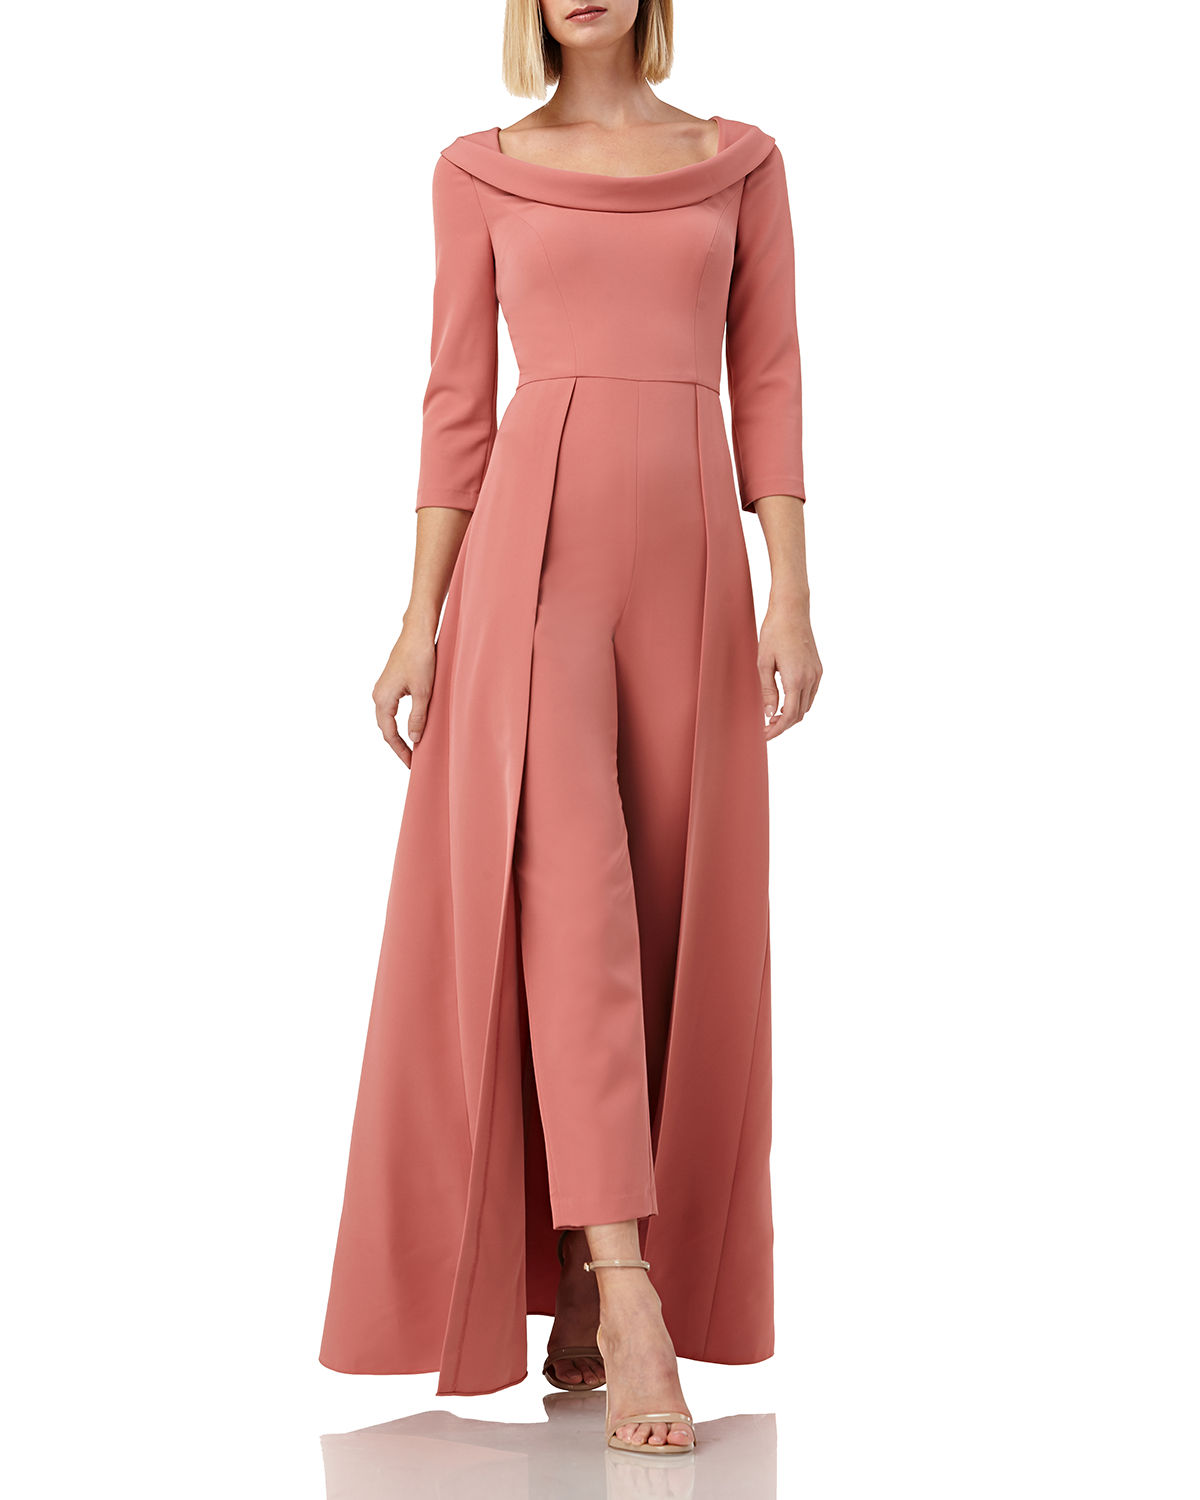 Kay Unger Suits Walk Thru Boat-Neck 3/4-Sleeve Jumpsuit w/ Crepe Overlay Skirt, DEEP ROSE